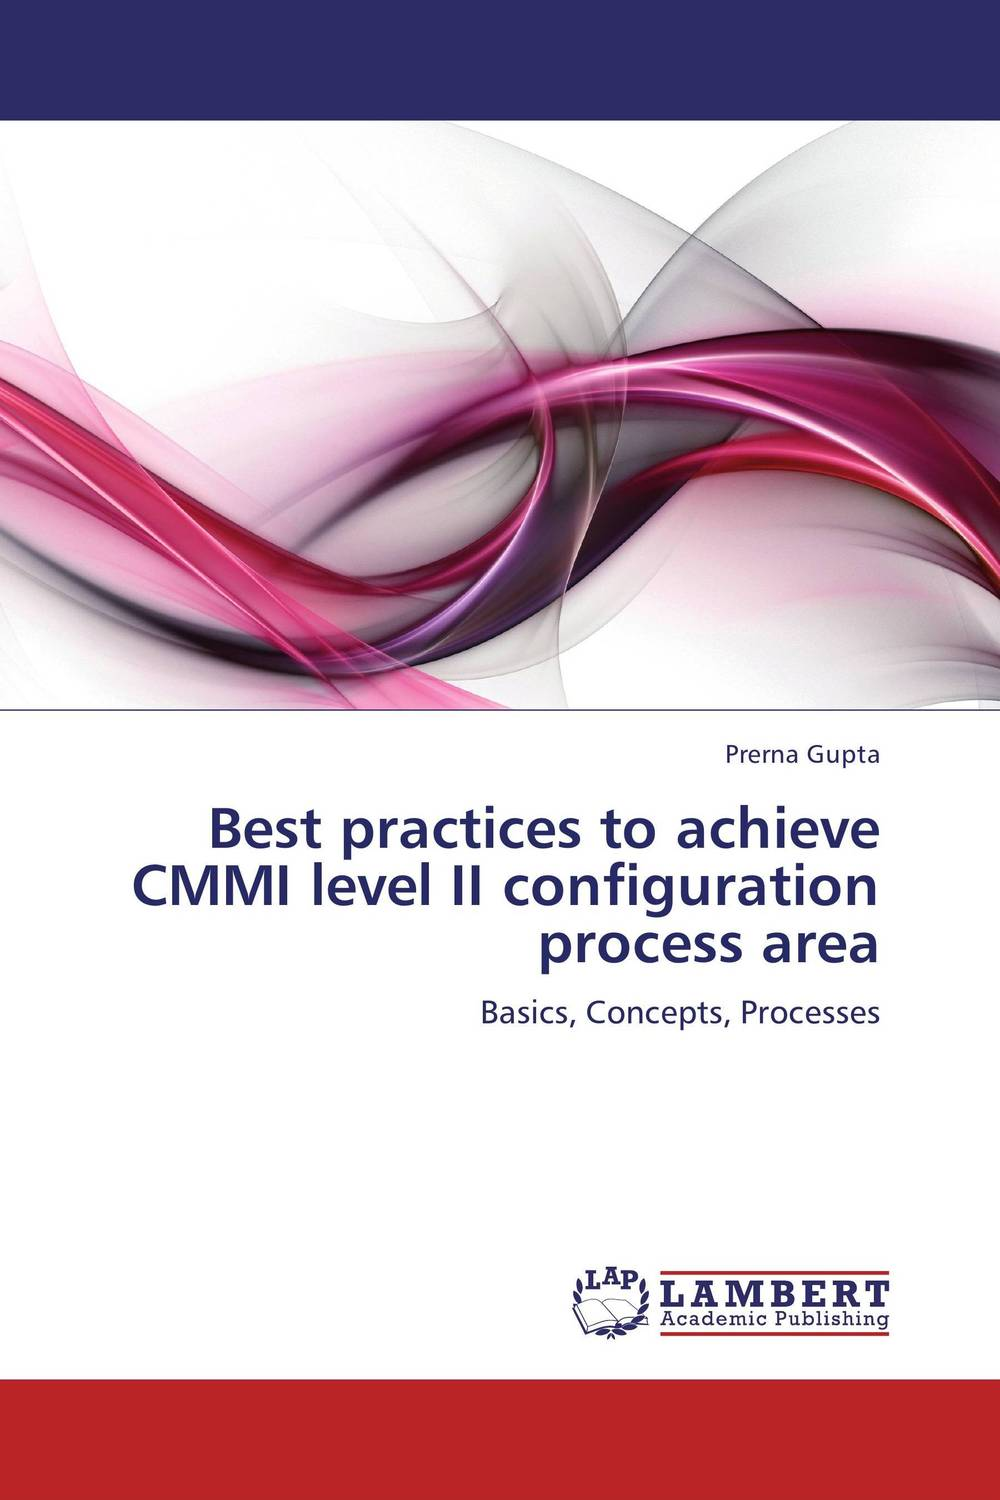 Best practices to achieve CMMI level II configuration process area vidstar vss 4p4 60 vss 4p4 m0 60